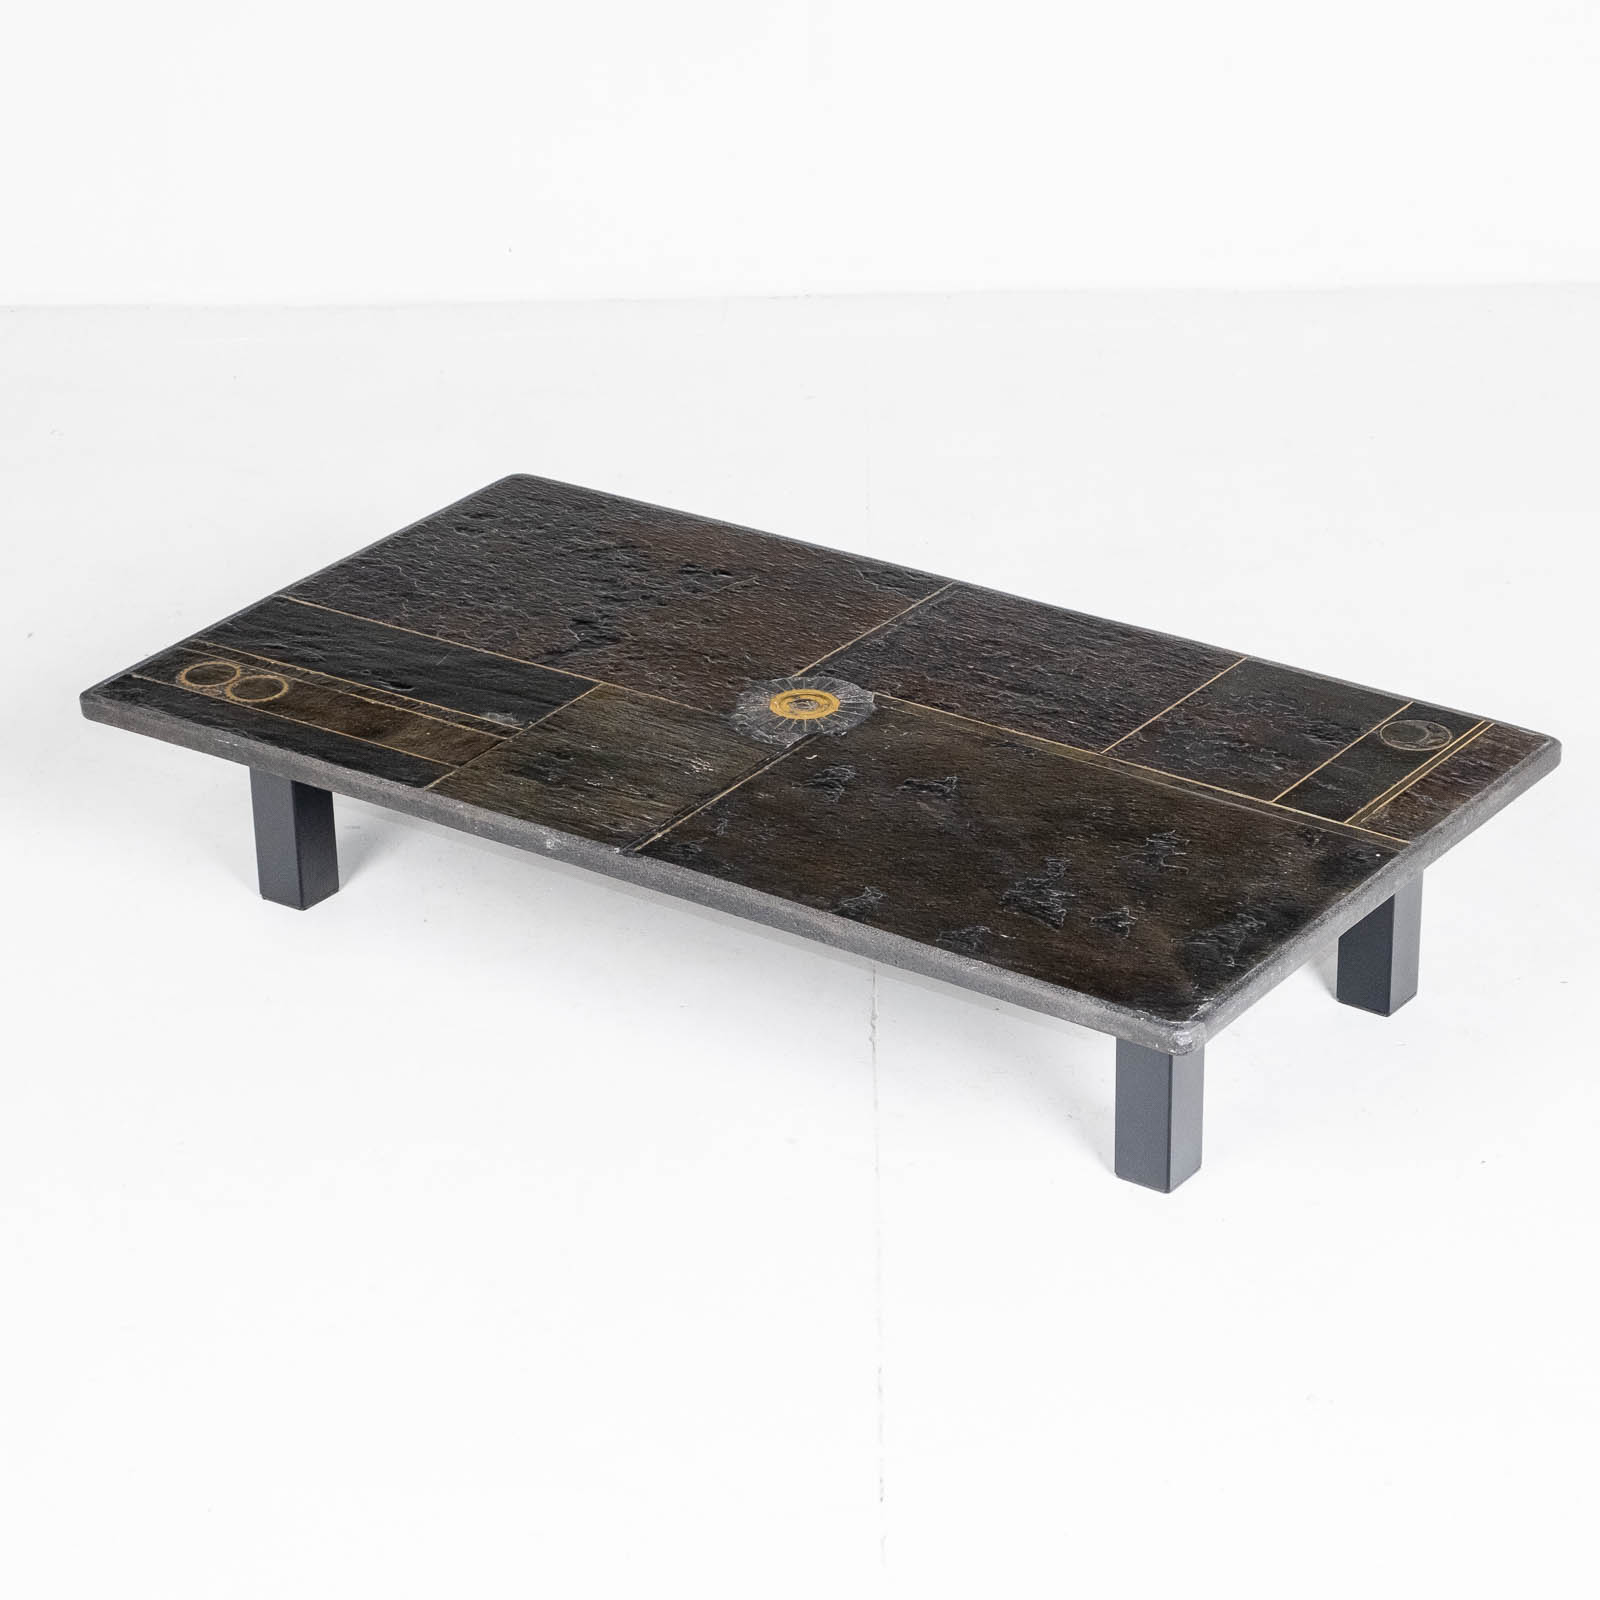 Rectangular Coffee Table By Paul Kingma In Stone, Slate And Brass, 1970s, The Netherlands 00005